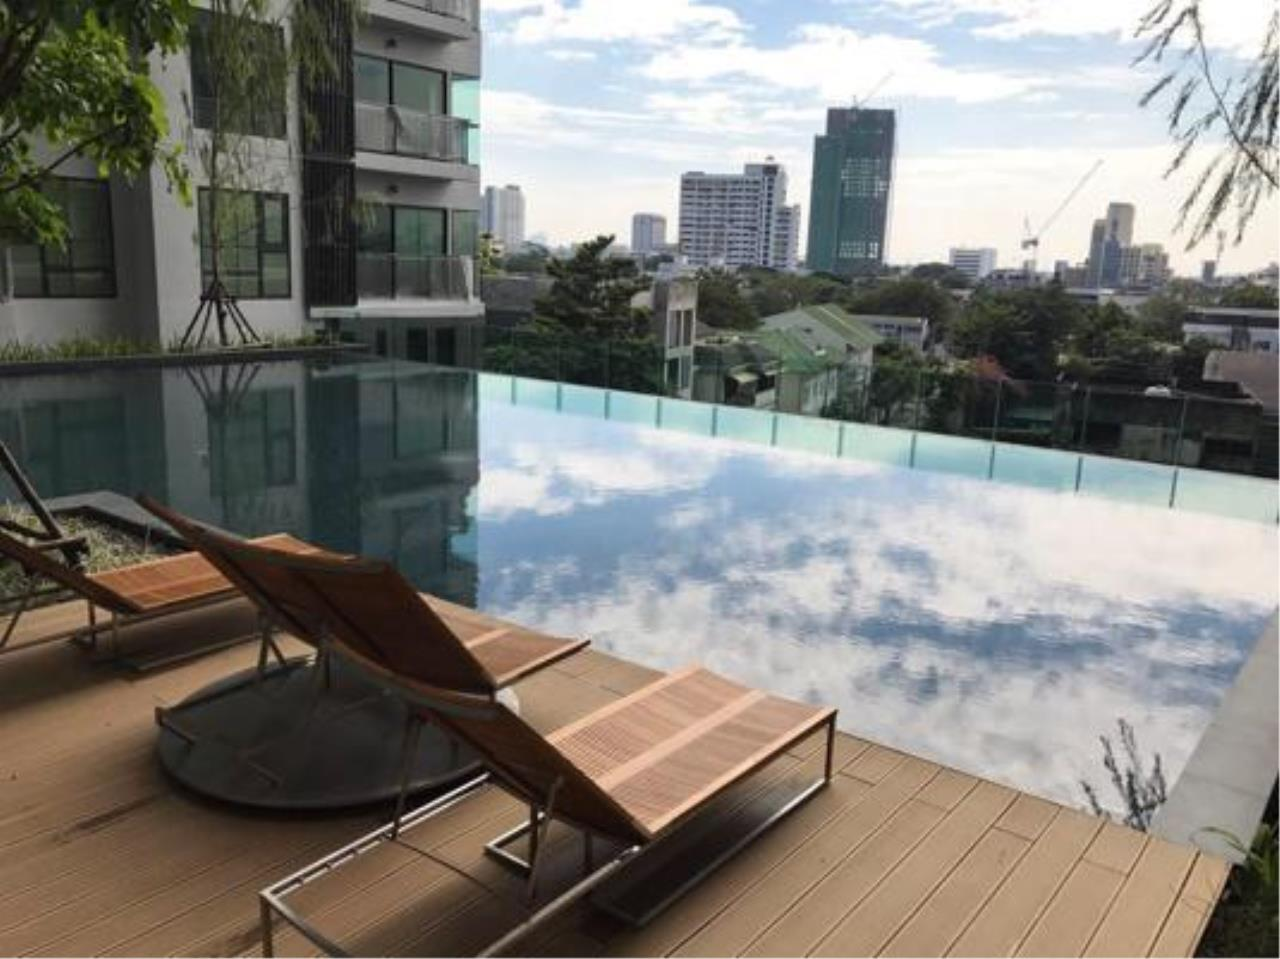 Right Move Thailand Agency's CA3834 Rhythm Sukhumvit  For Sale 10,900,000 THB  2 beds Rhythm Sukhumvit 36-38 12